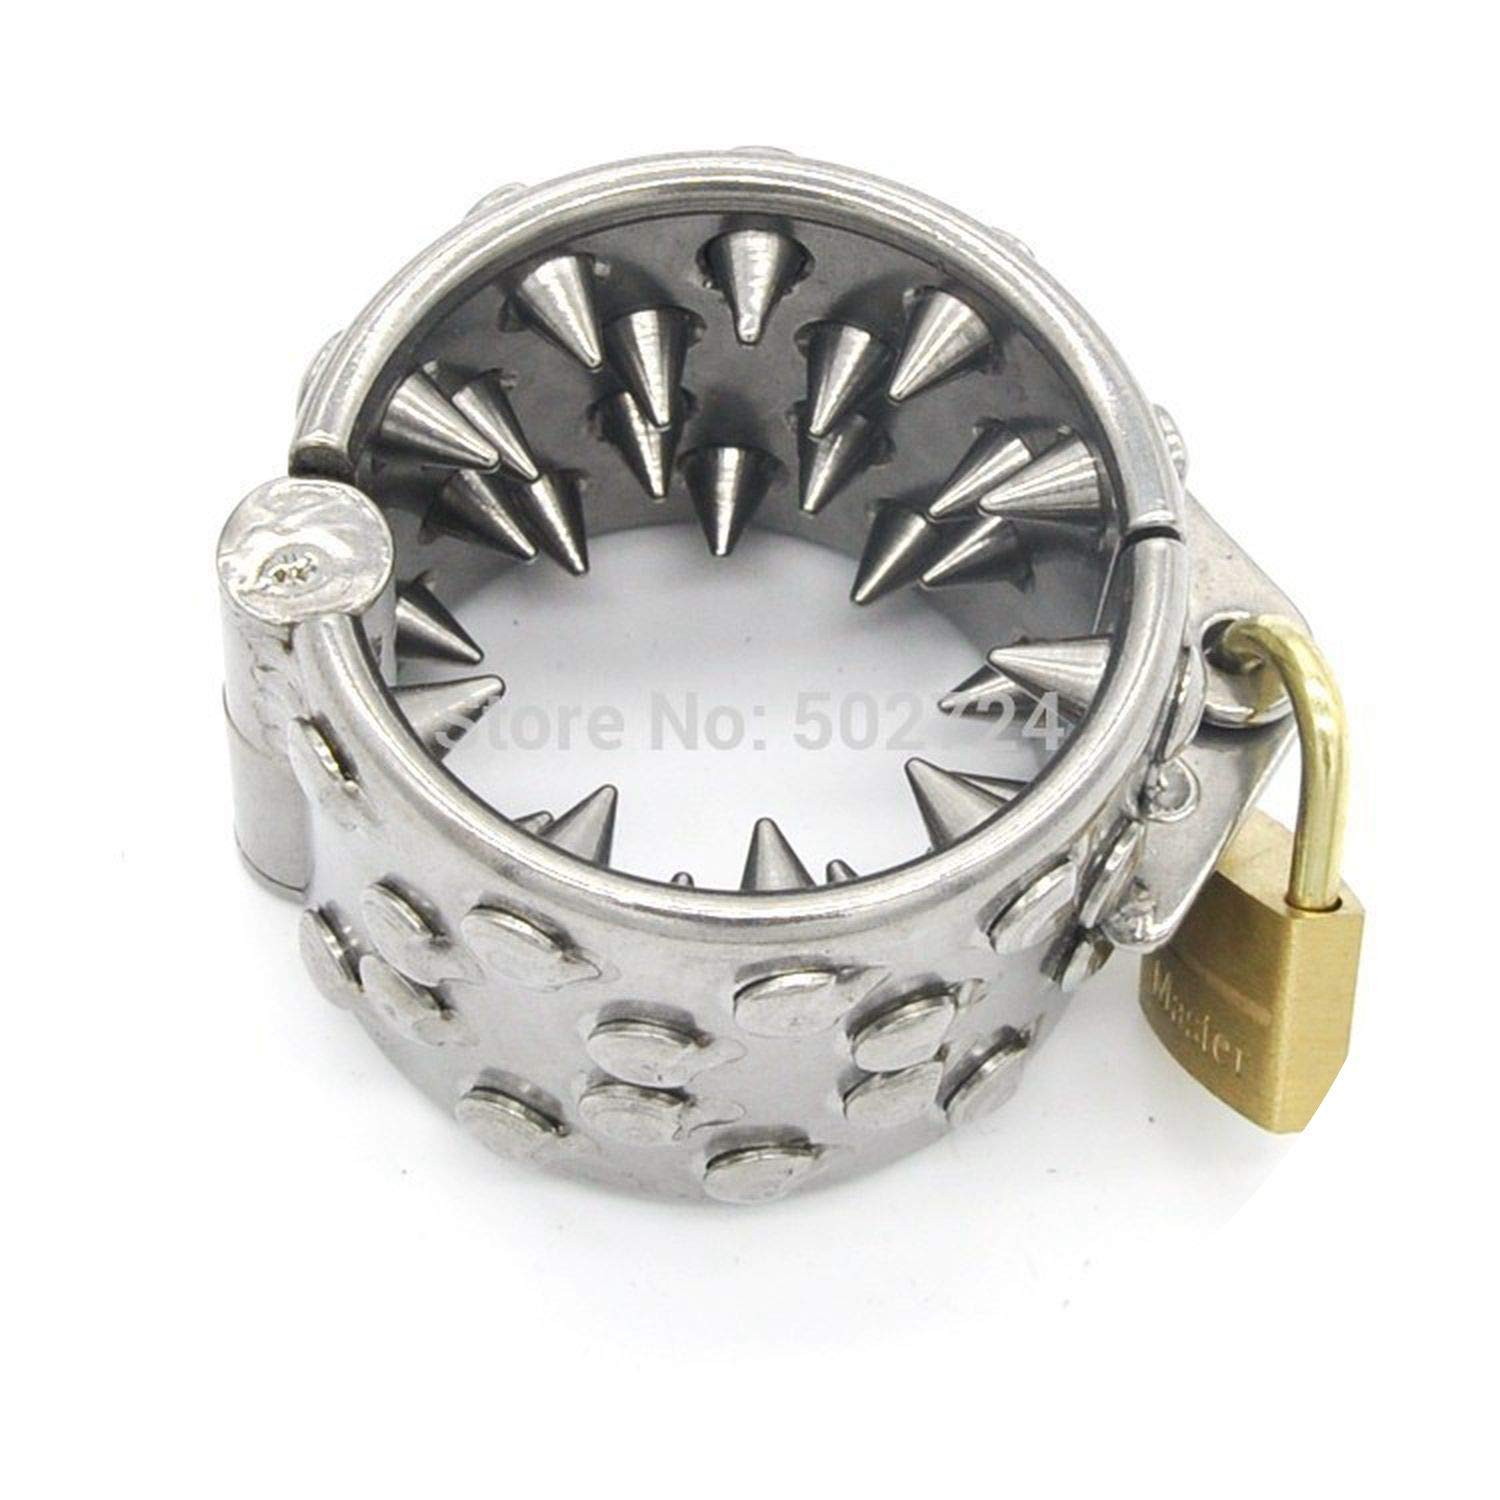 MYBYE TSHIRT Stainless Steel Ring 4 Rows Teeth Ring Stretcher Weight for Male